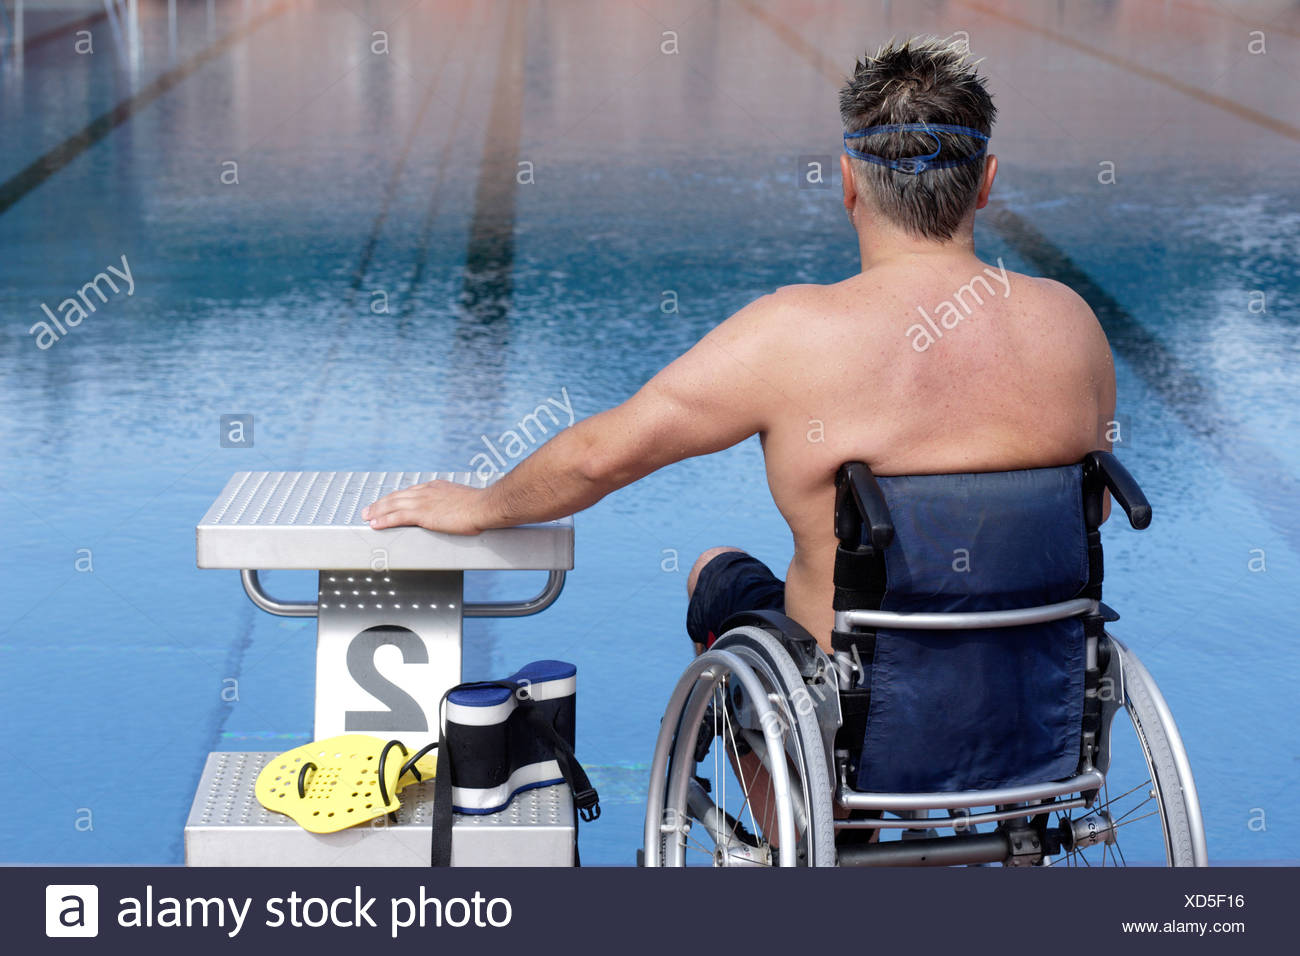 Pool Wheelchair Young Stock Photos & Pool Wheelchair Young Stock ...